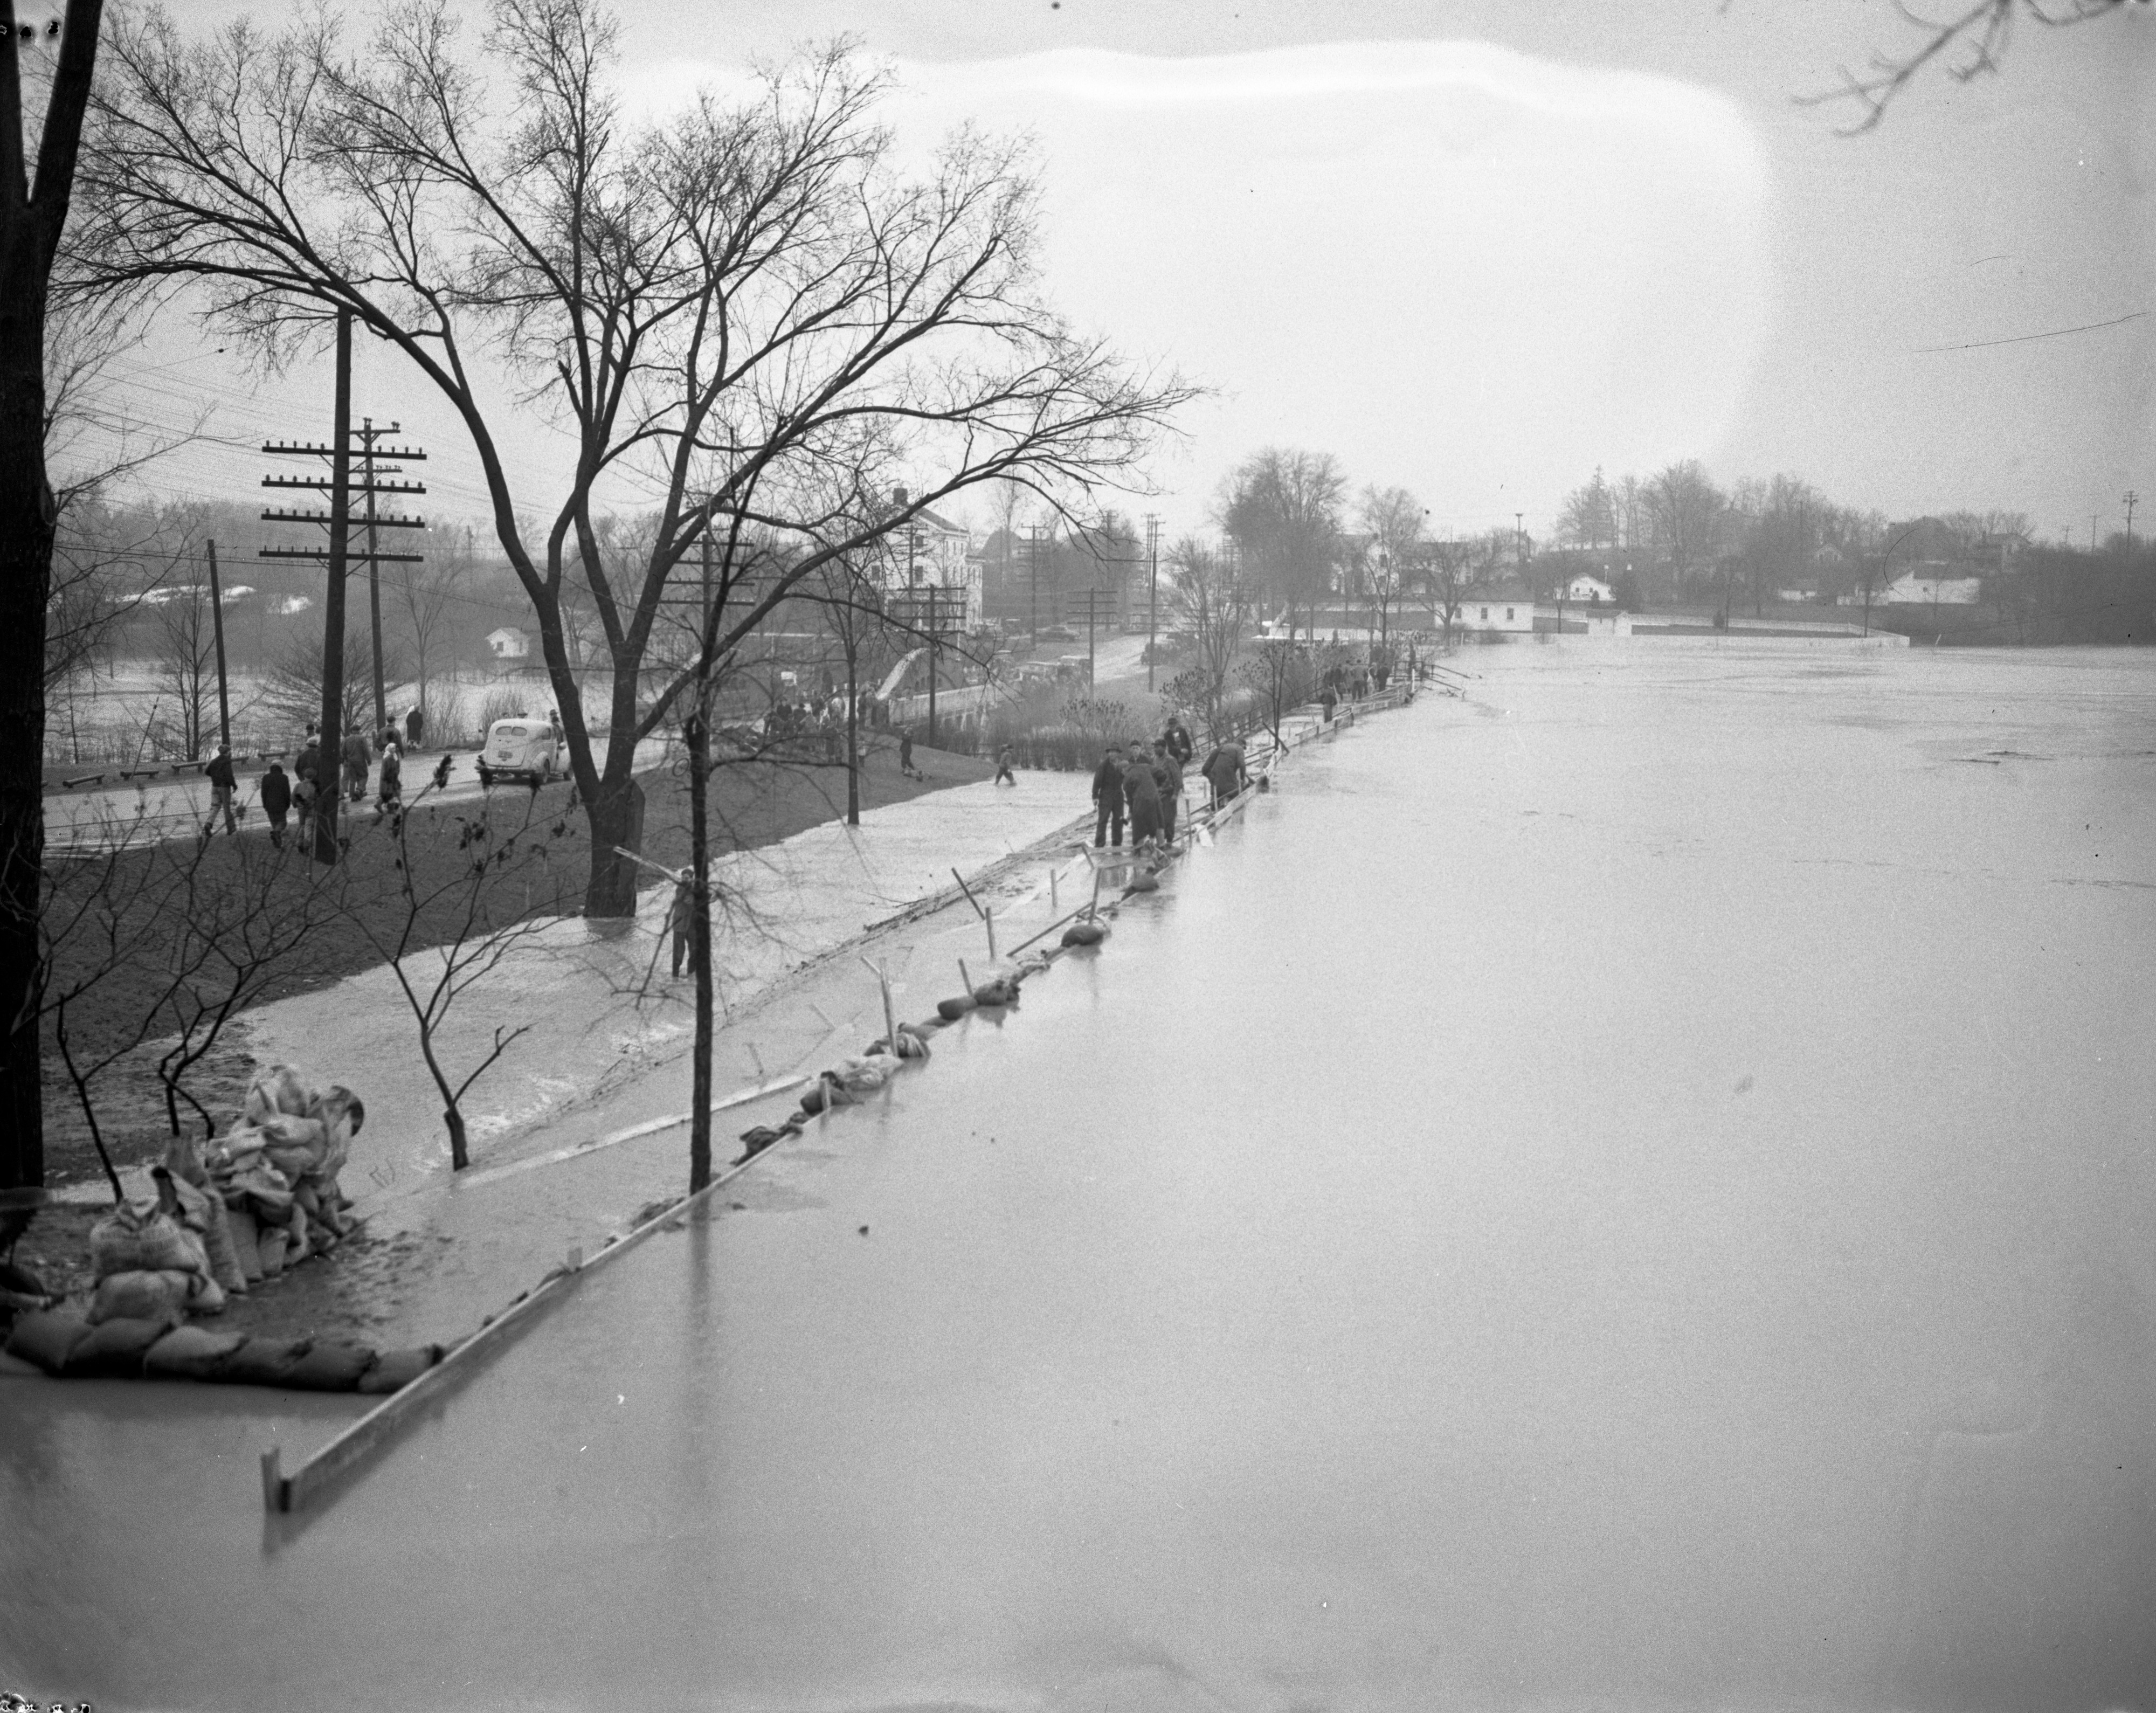 Volunteers Fight Flood at Saline Dam, April 1947 image